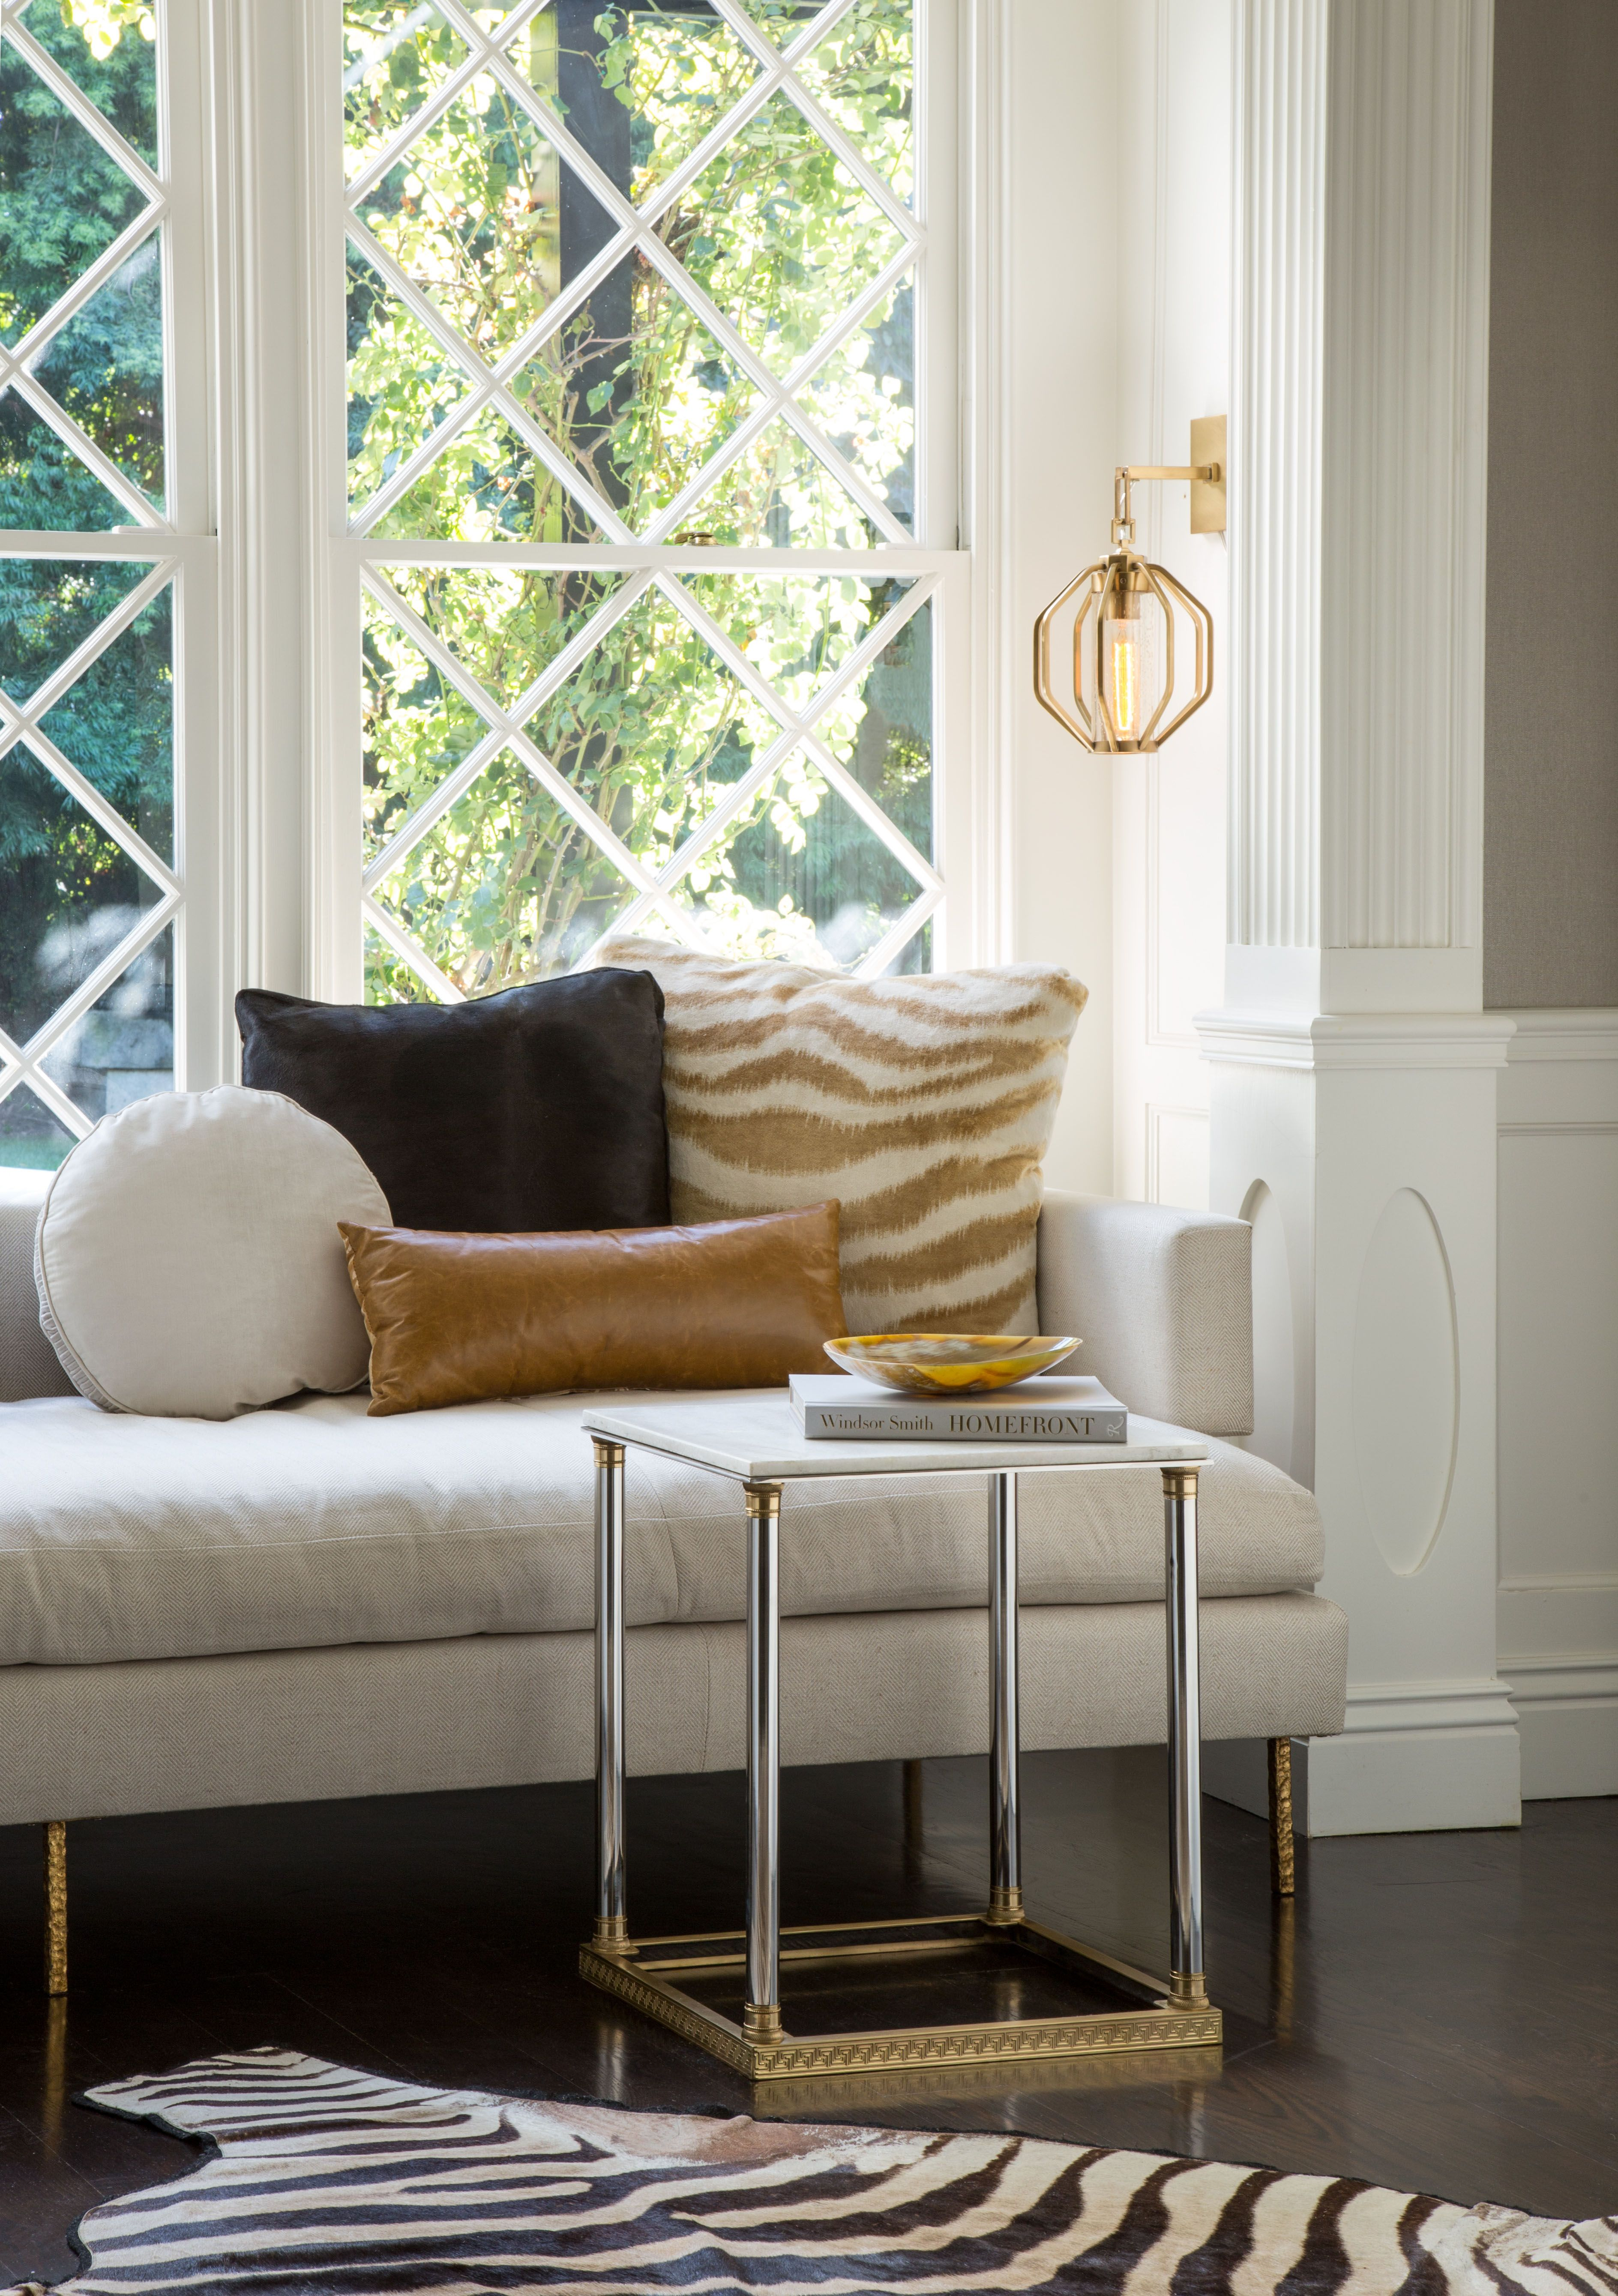 windsor smith for arteriors home | windsor f.c., window and living